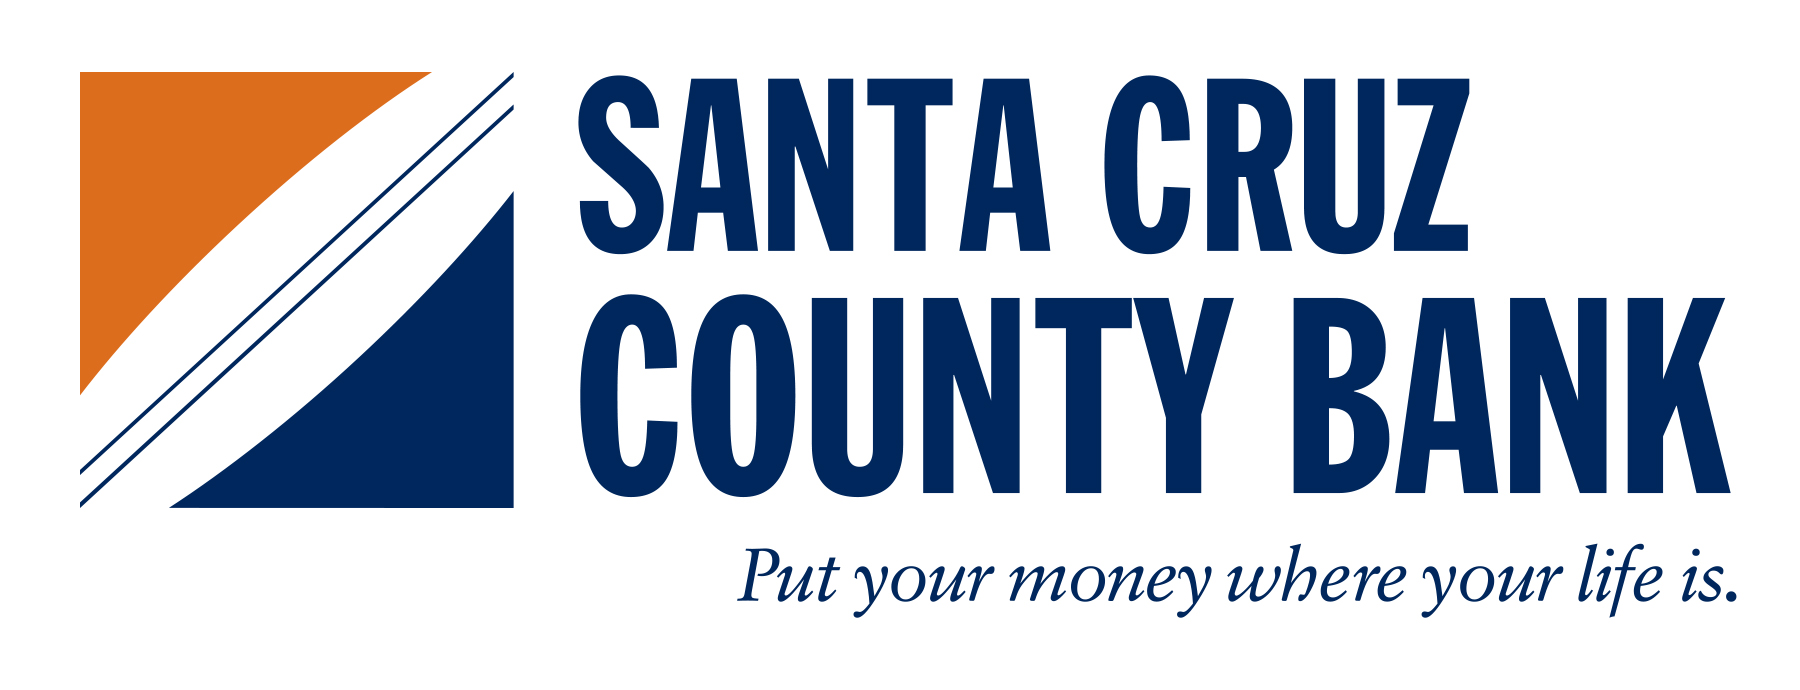 Logo link to Santa Cruz County Bank website. Logo tagline: Put your money where your life is.